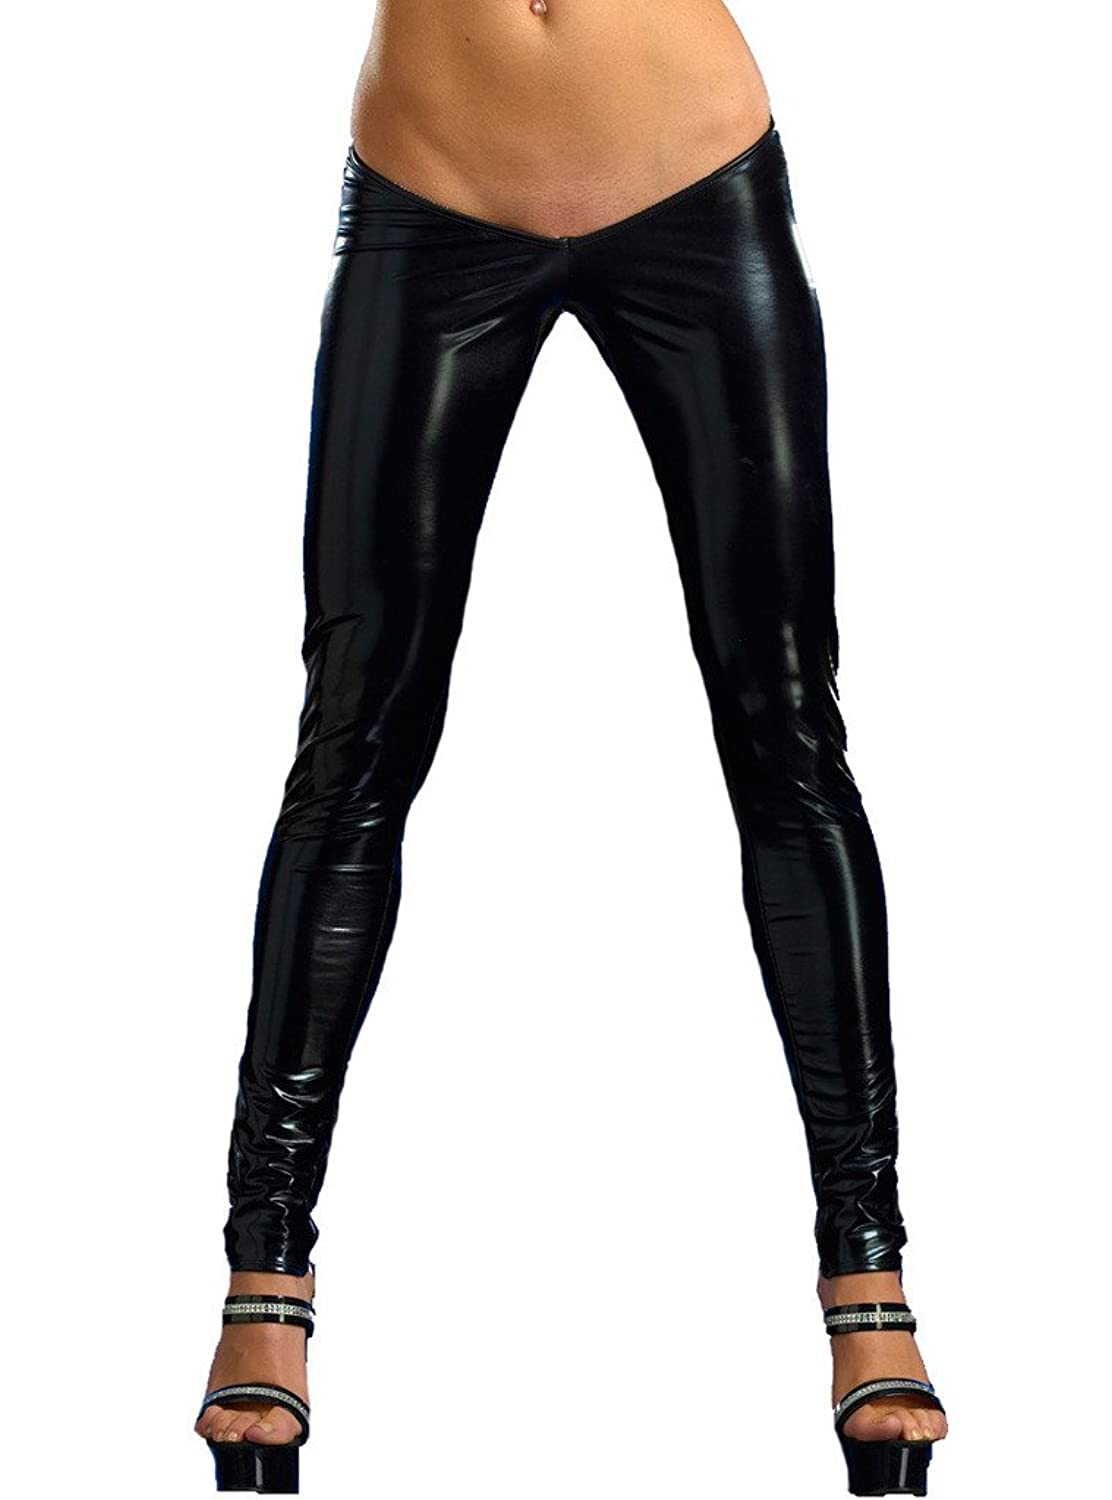 Wicked Temptations Sexy Skinny Pants Low Rise Scrunch Butt Metallic Made In The Usa Cheap